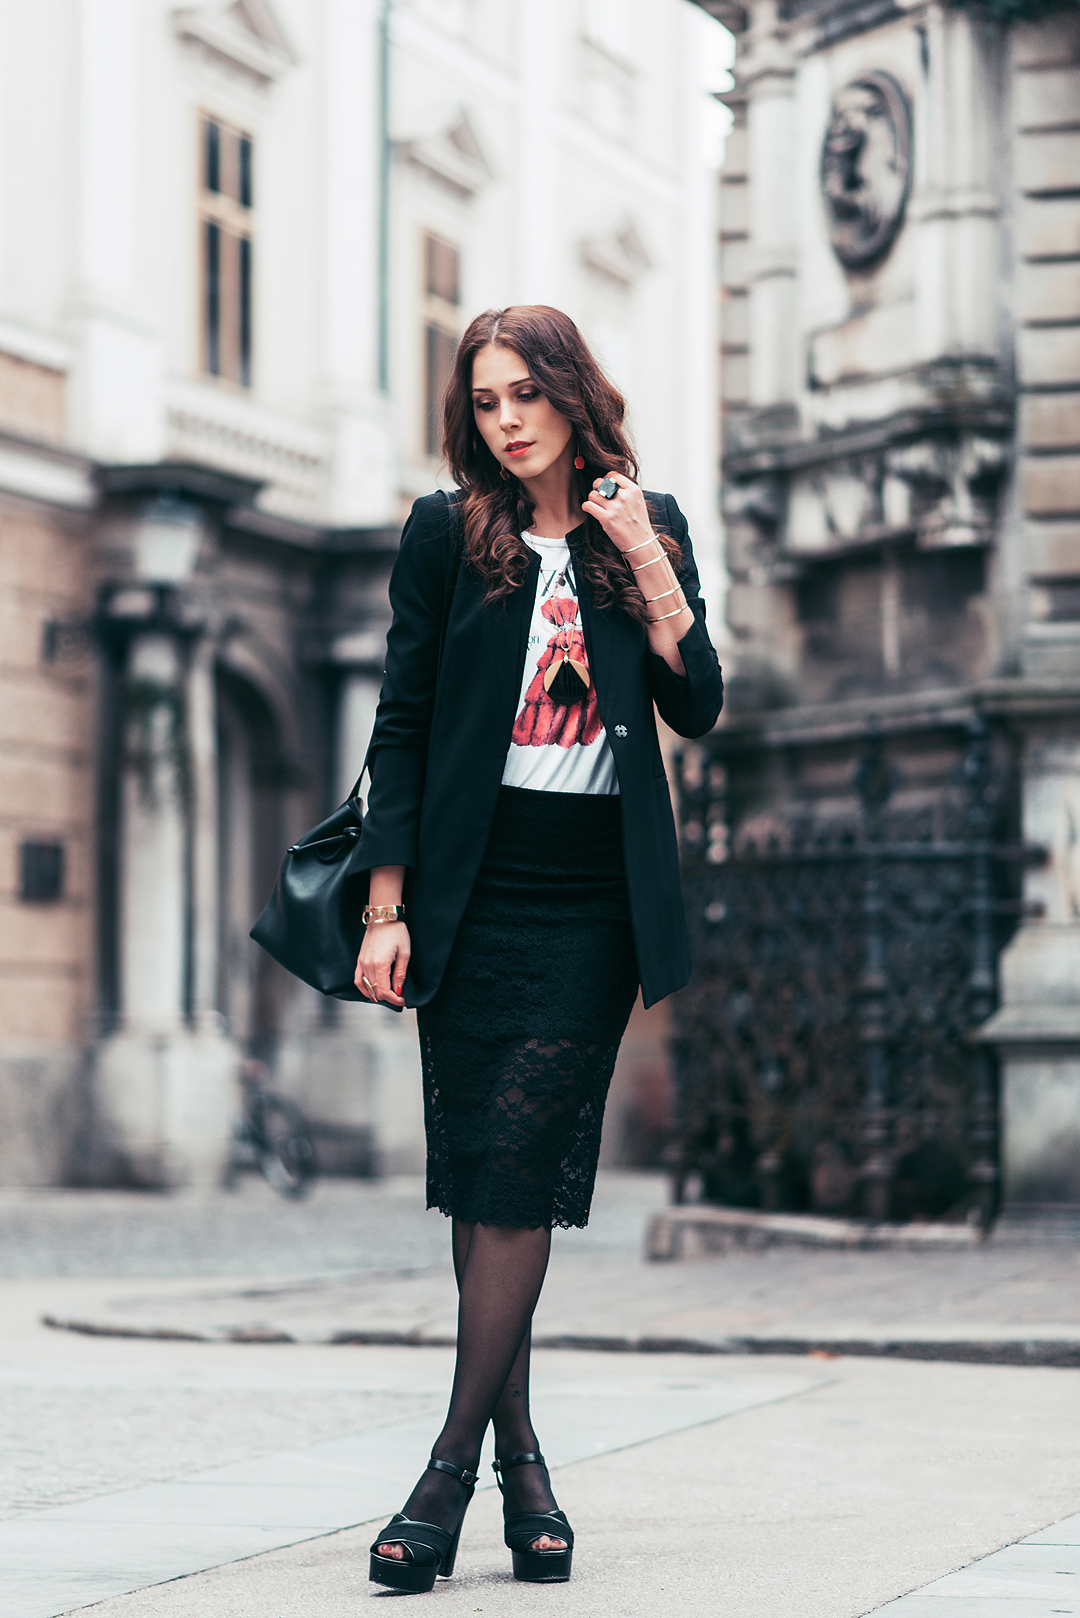 eva-ahacevcic_love-eva_ootd_six-accessories_zara-skirt_blazer_parfois-shoes_style_fashion